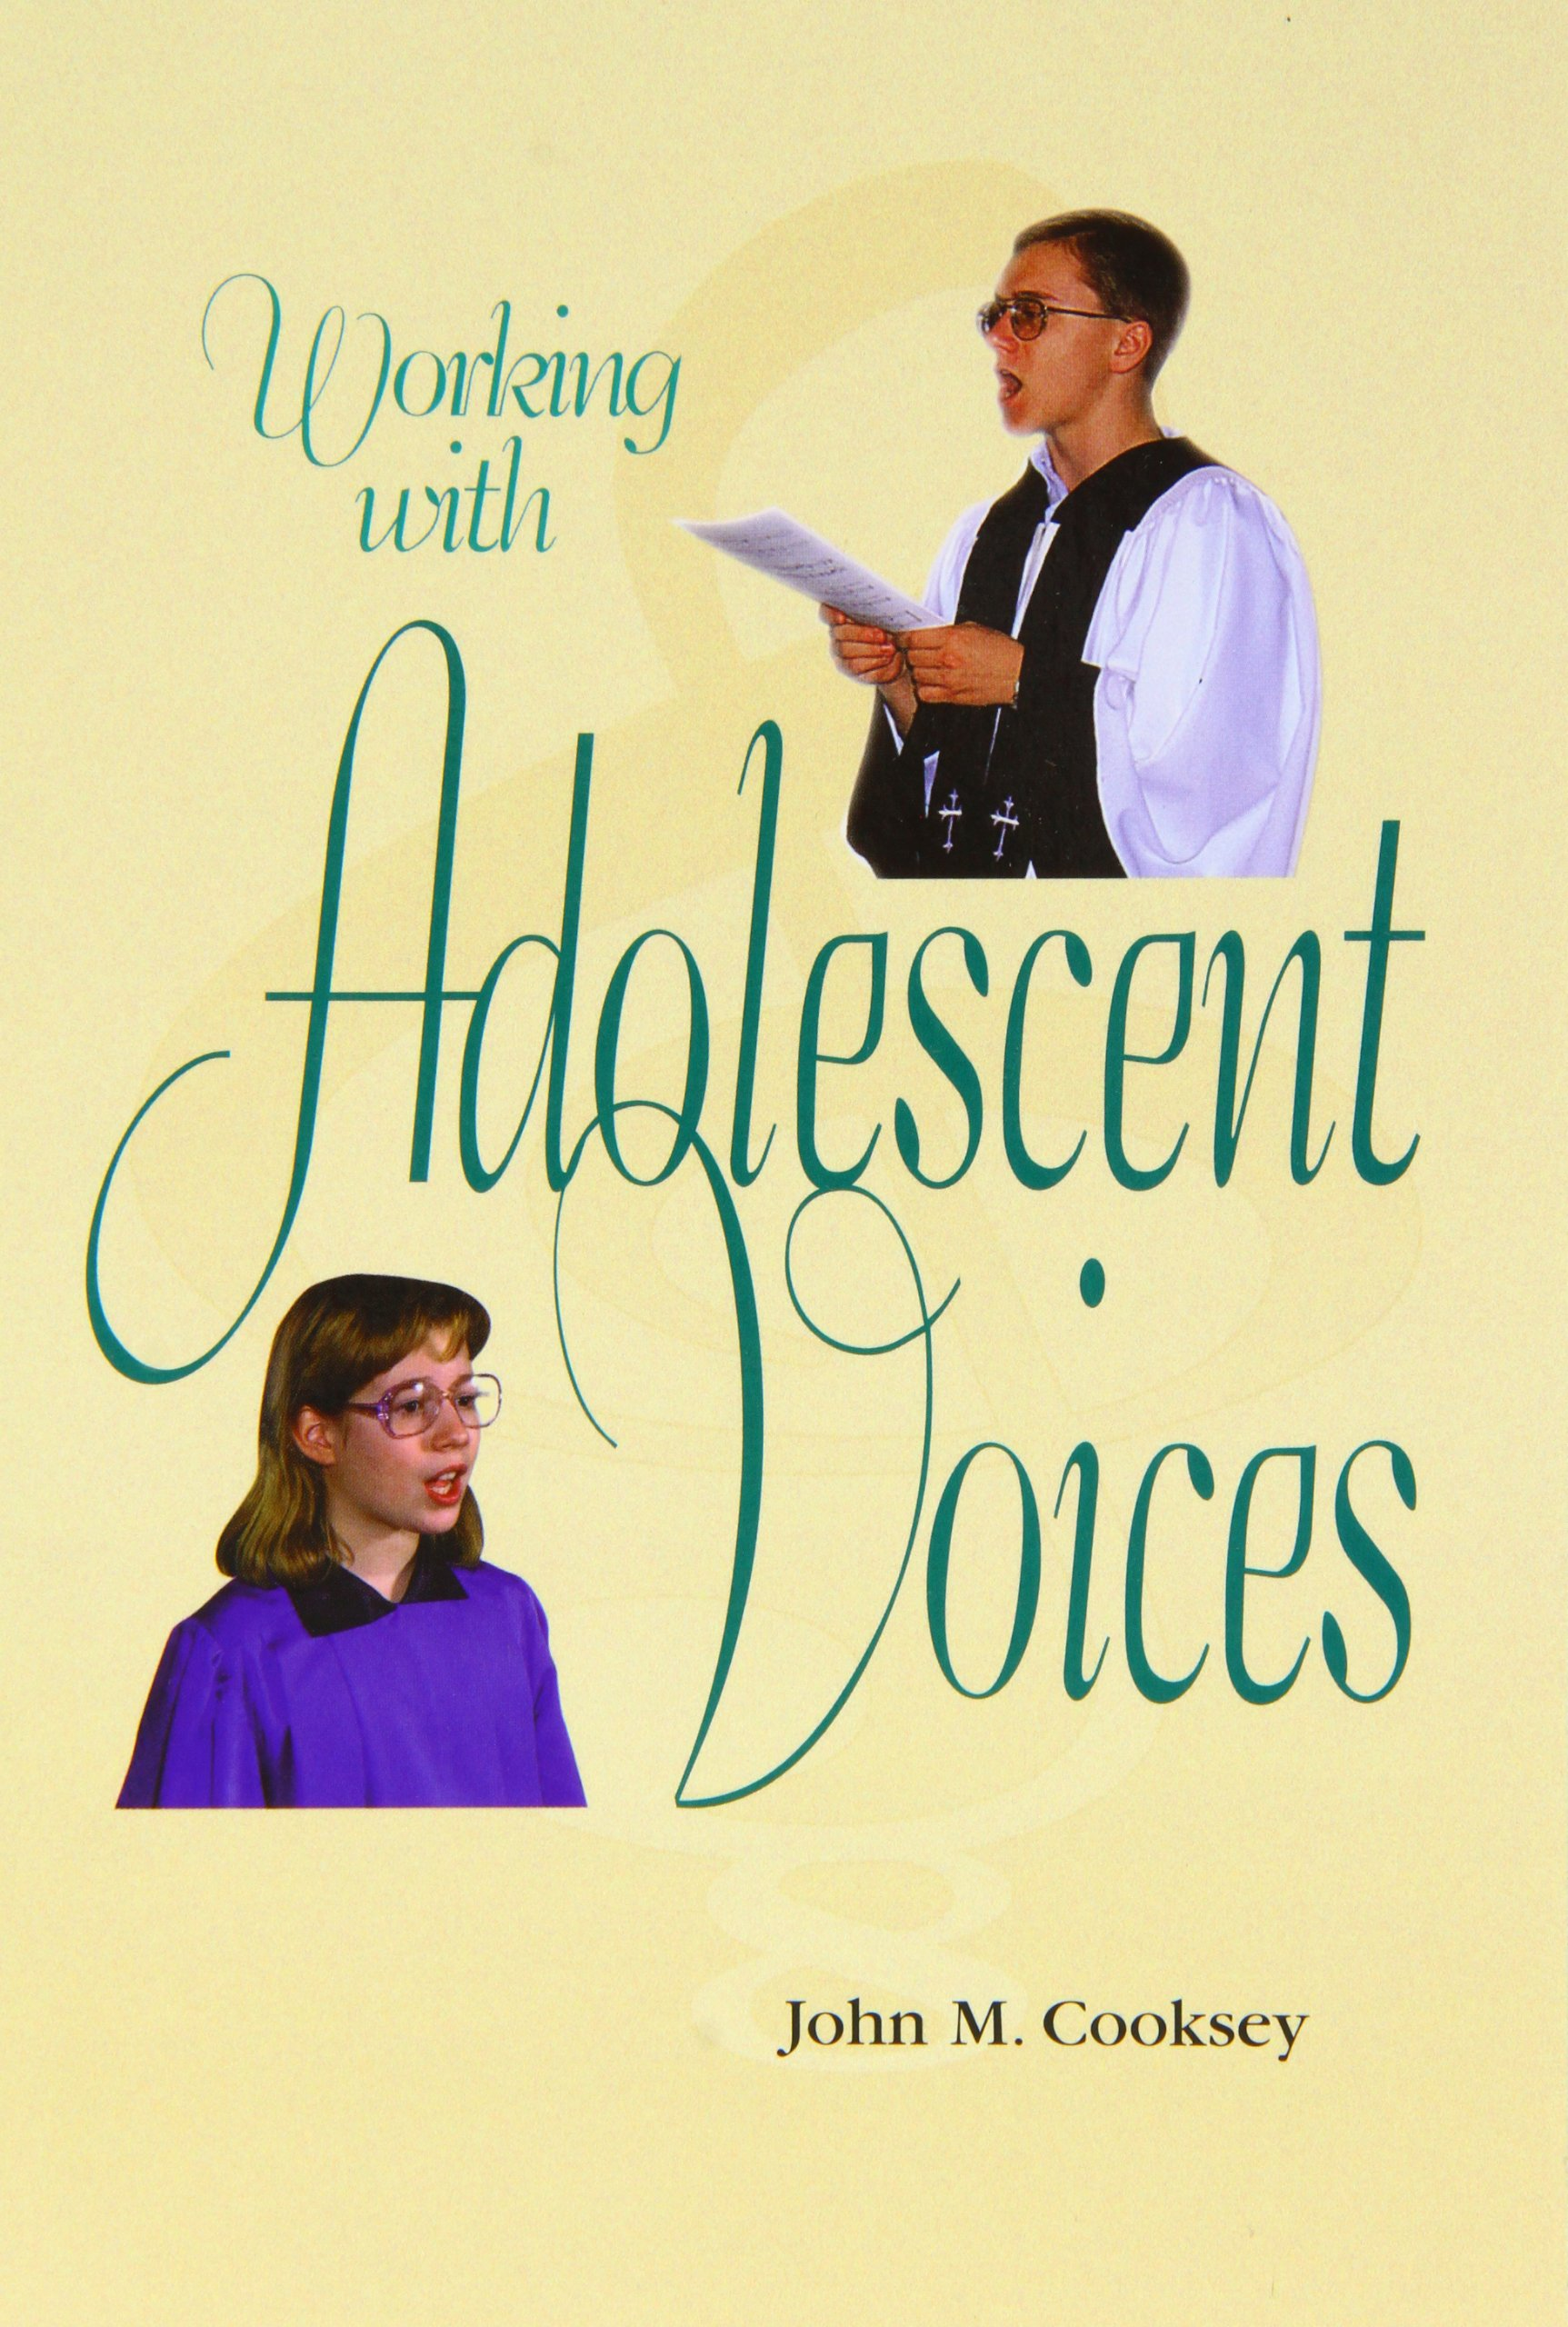 Working with Adolescent Voices